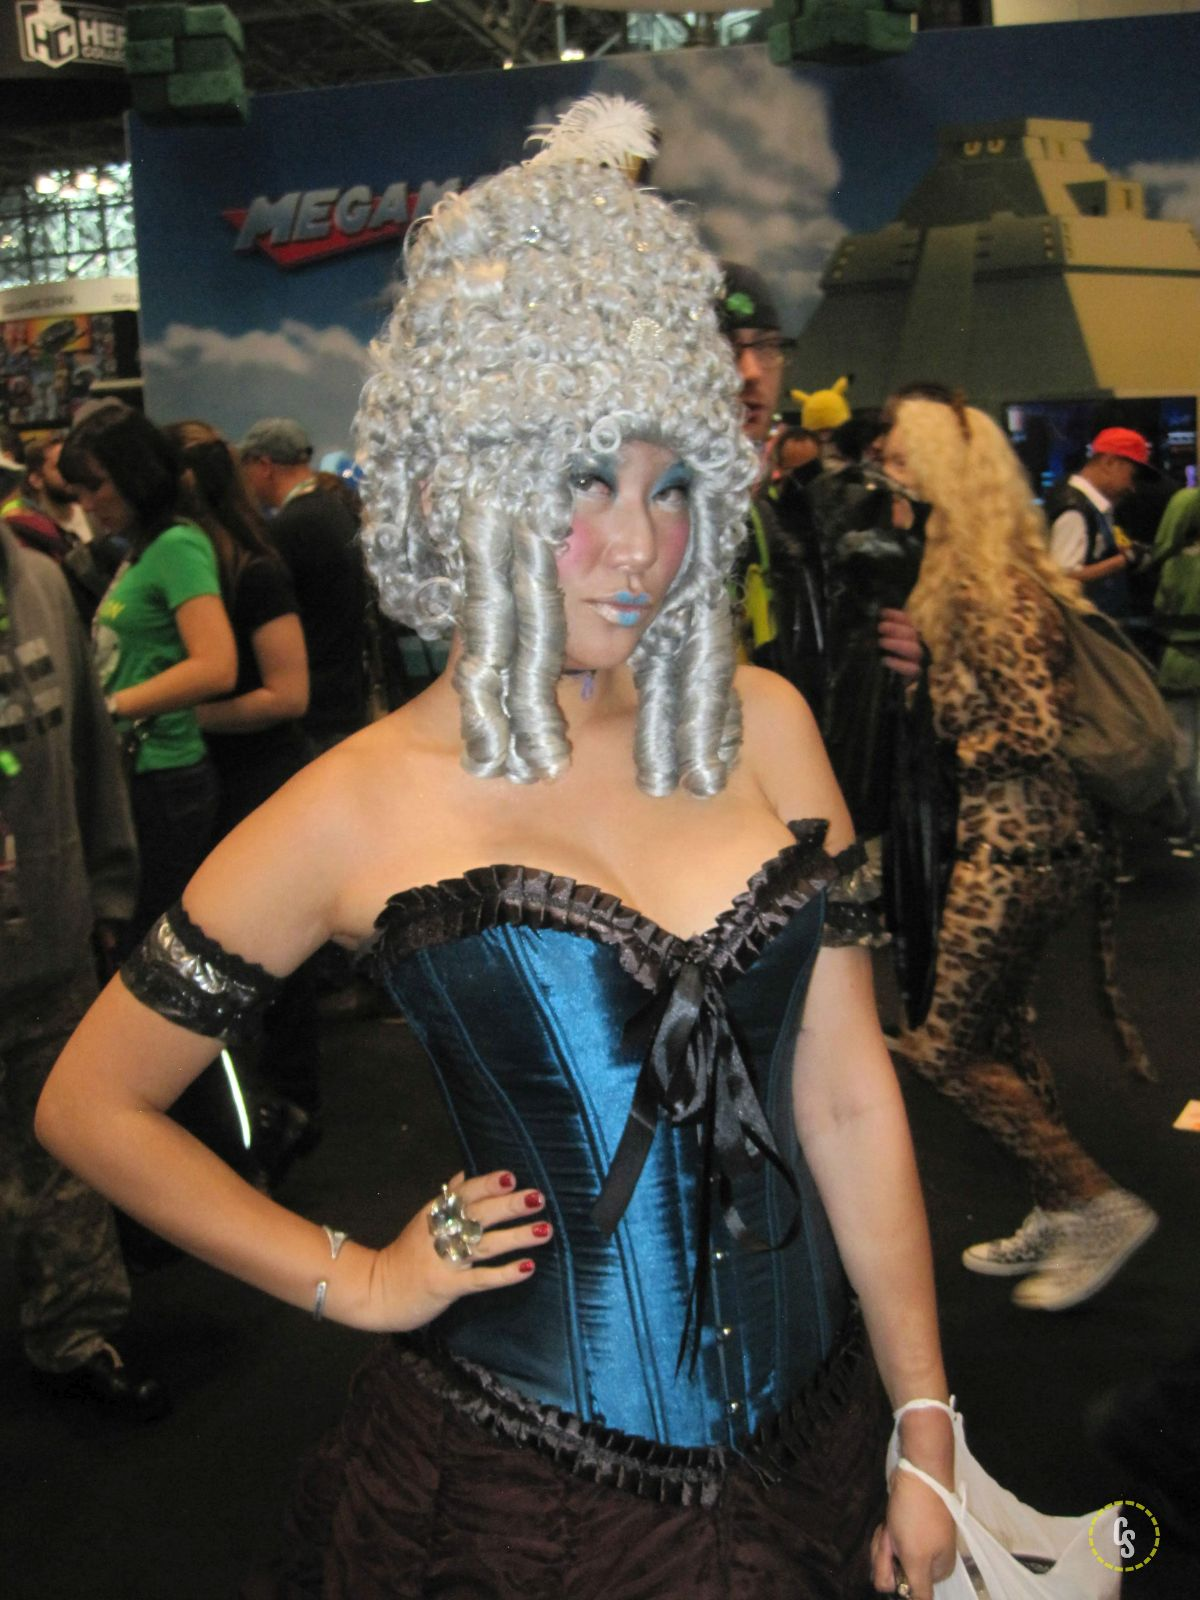 nycc182_058